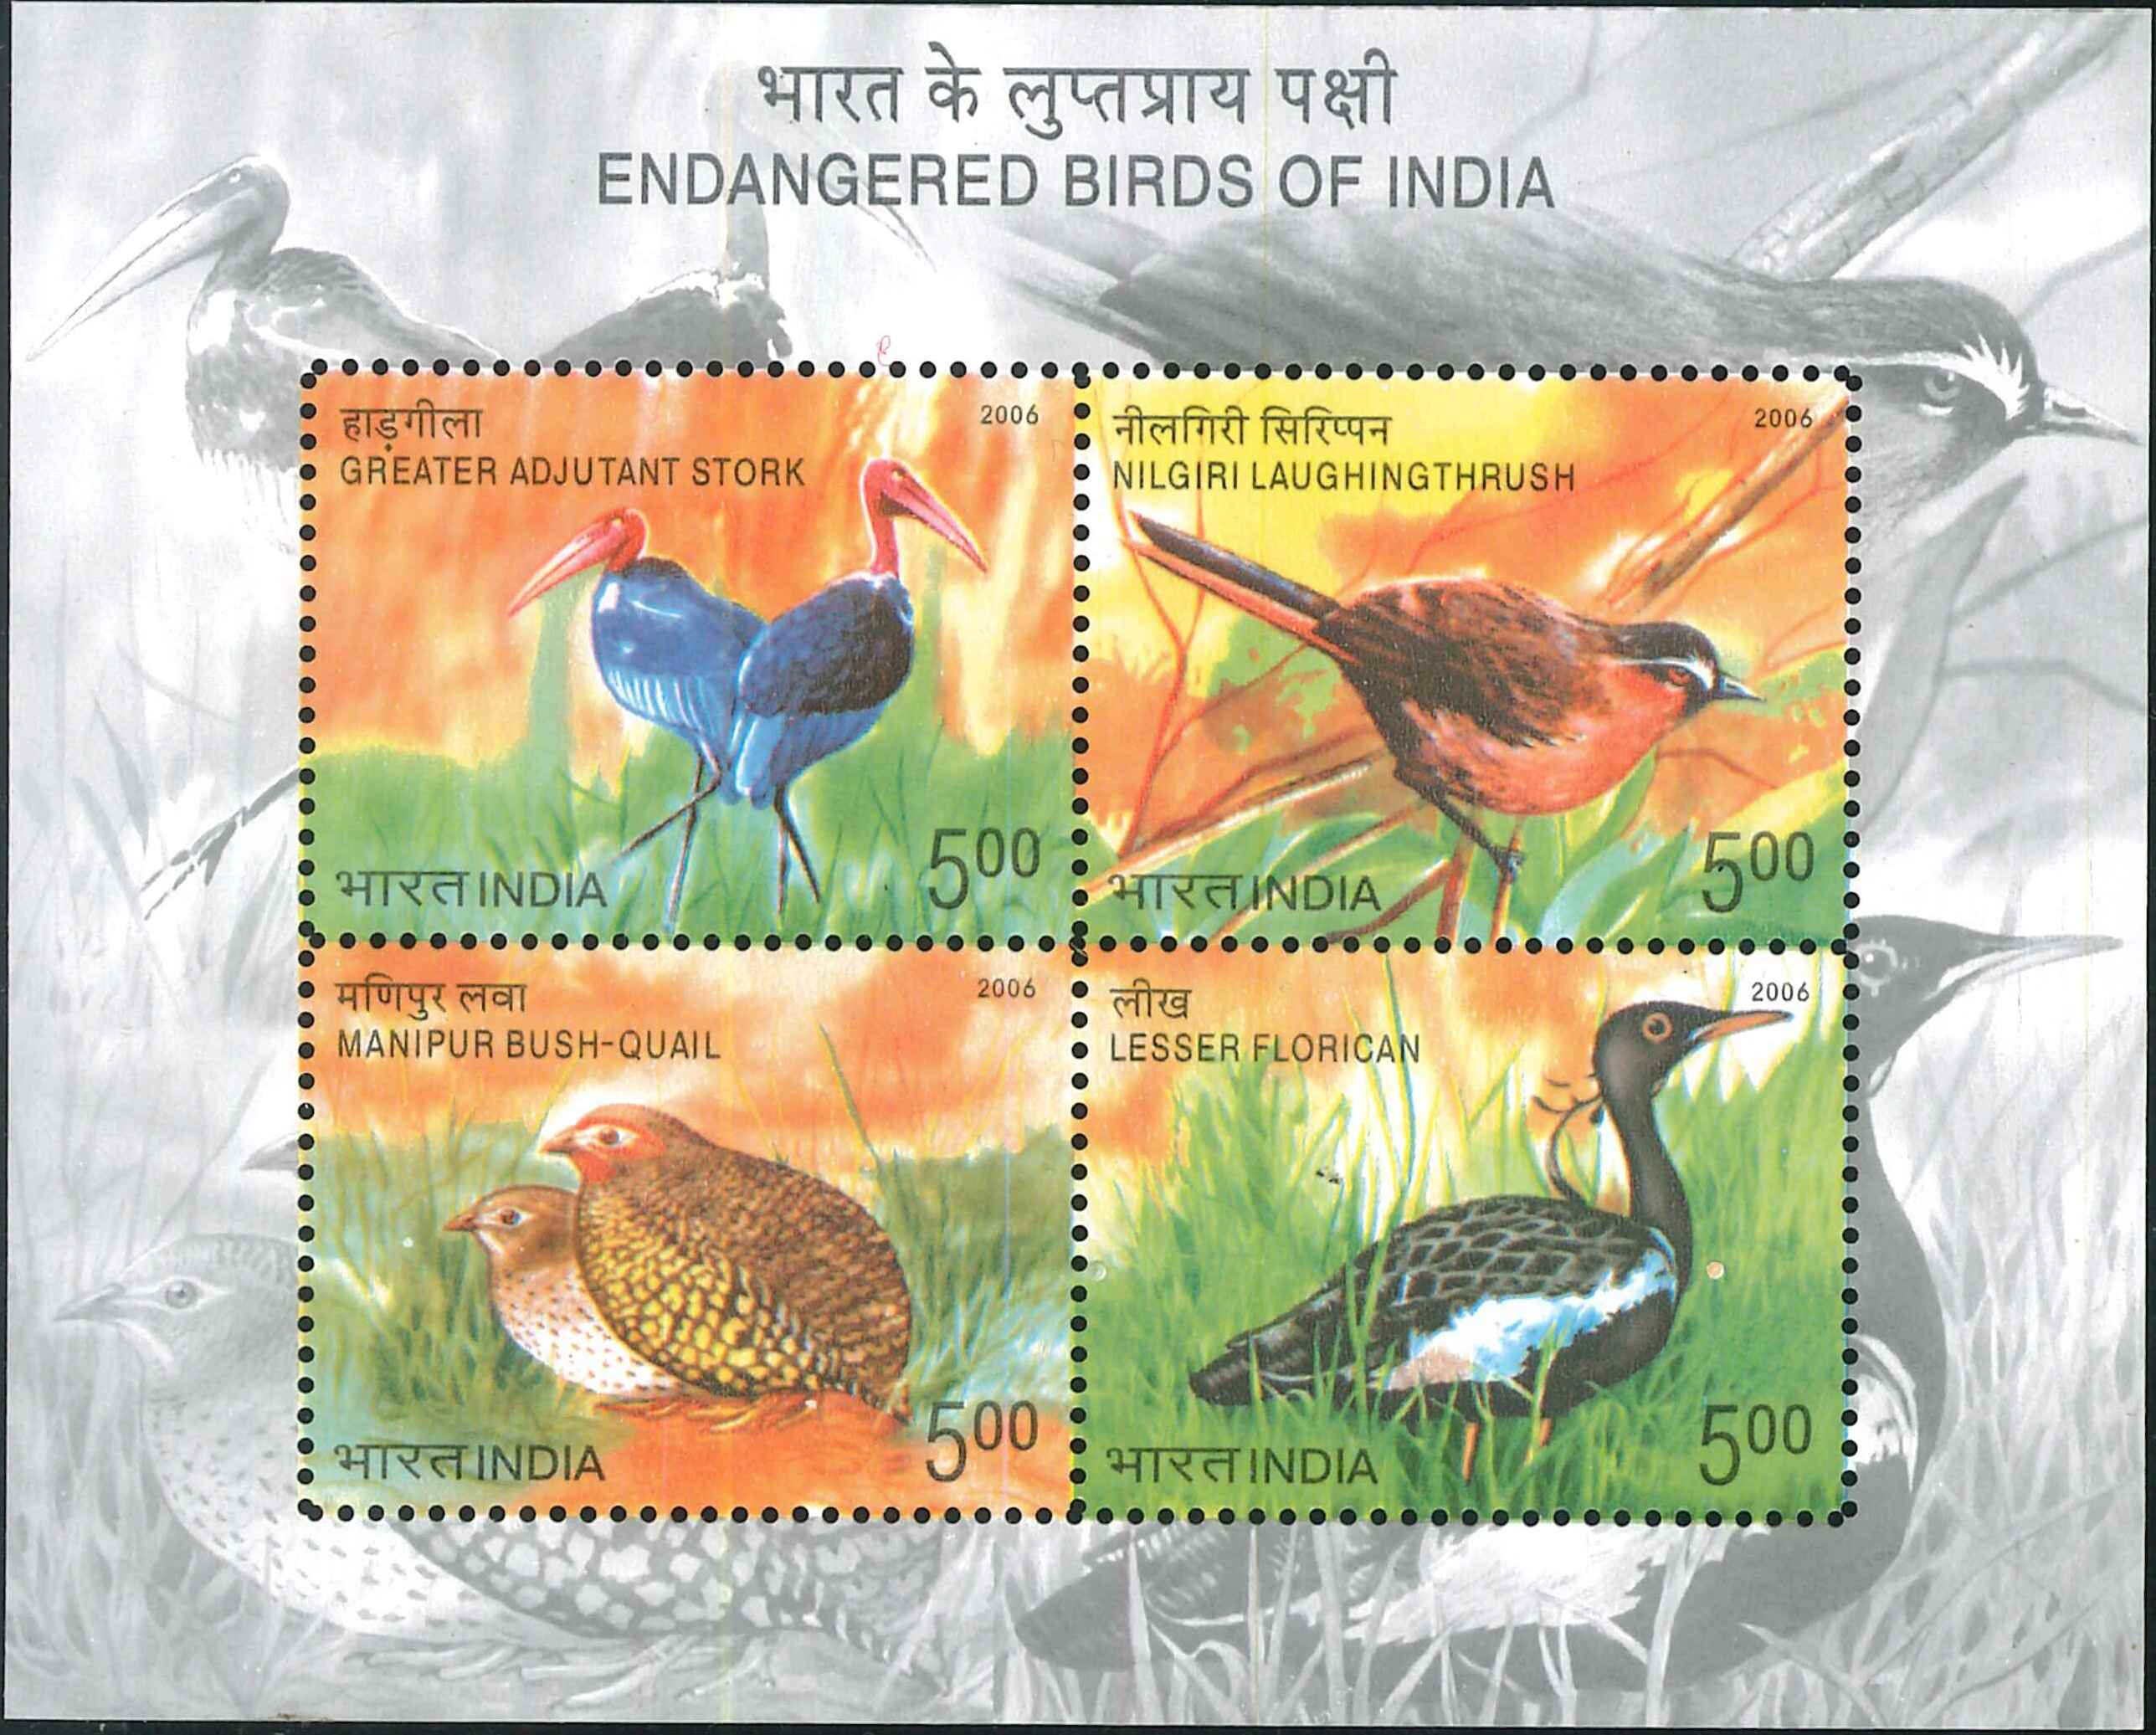 Manipur bush quail, Kharmore, Greater adjutant and Nilgiri laughingthrush